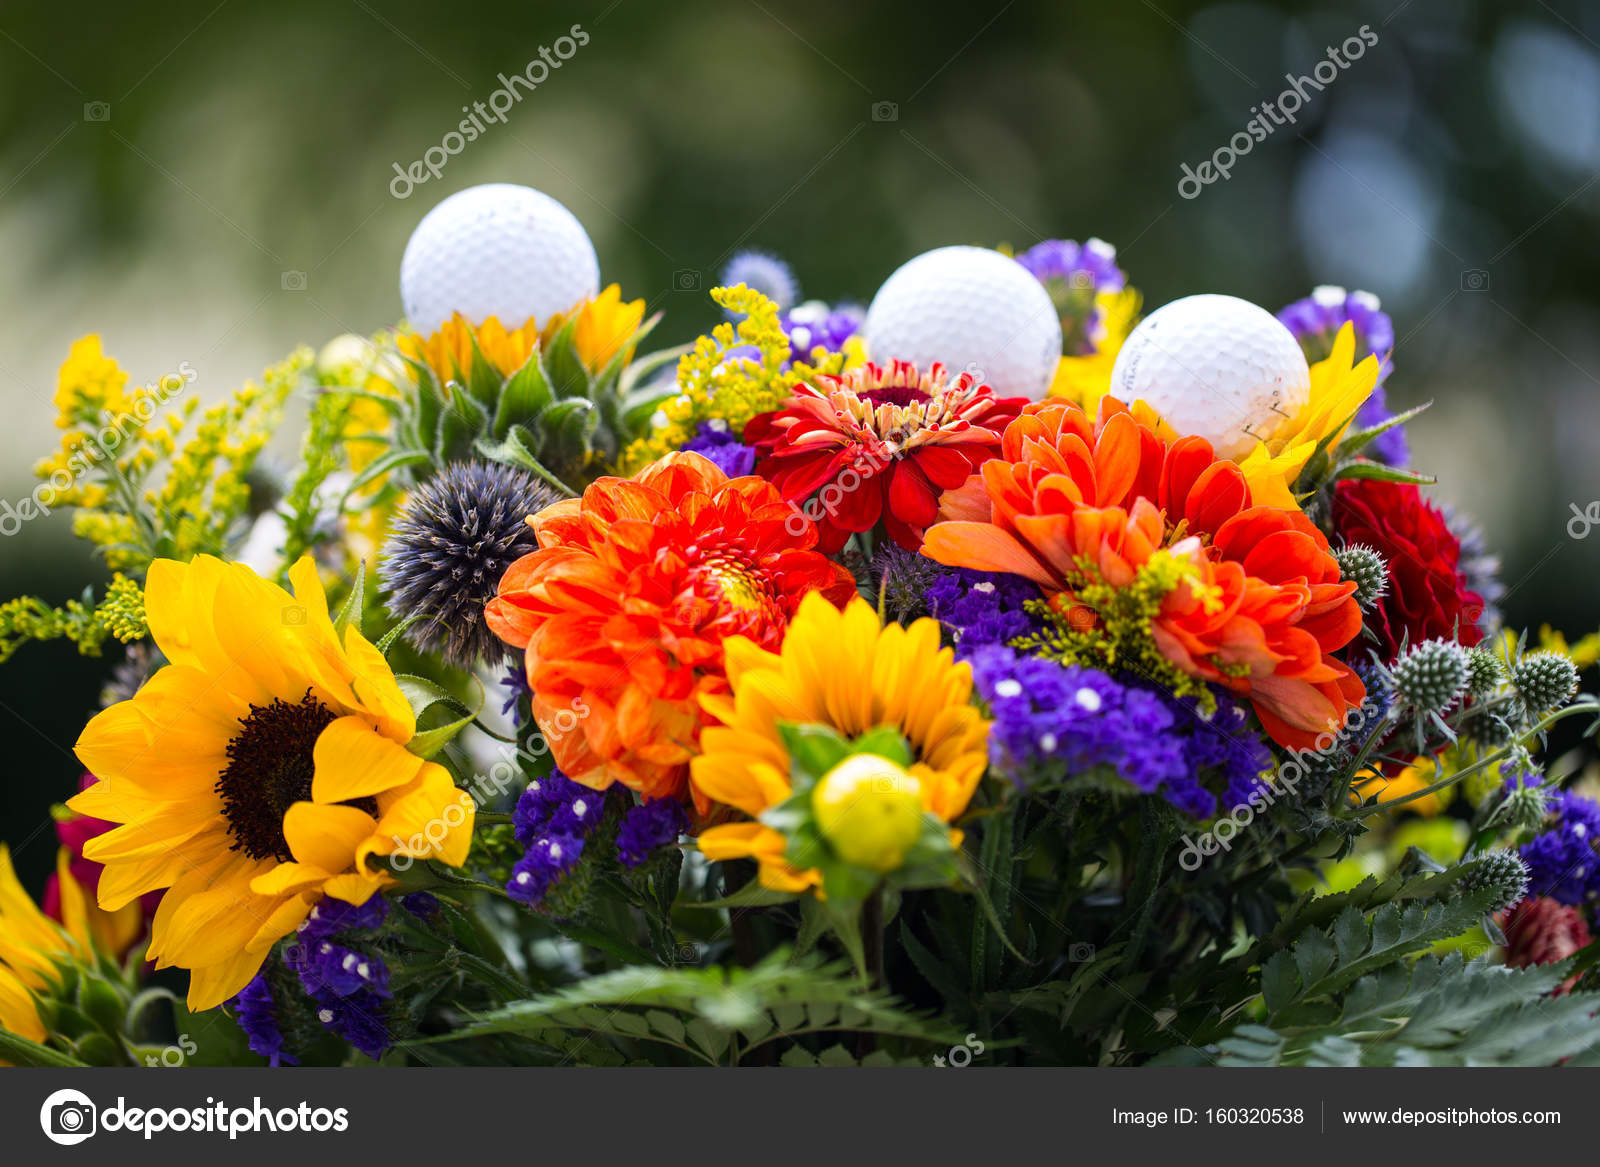 Golf Balls With Flowers For Birthday Card Voucher Stock Photo